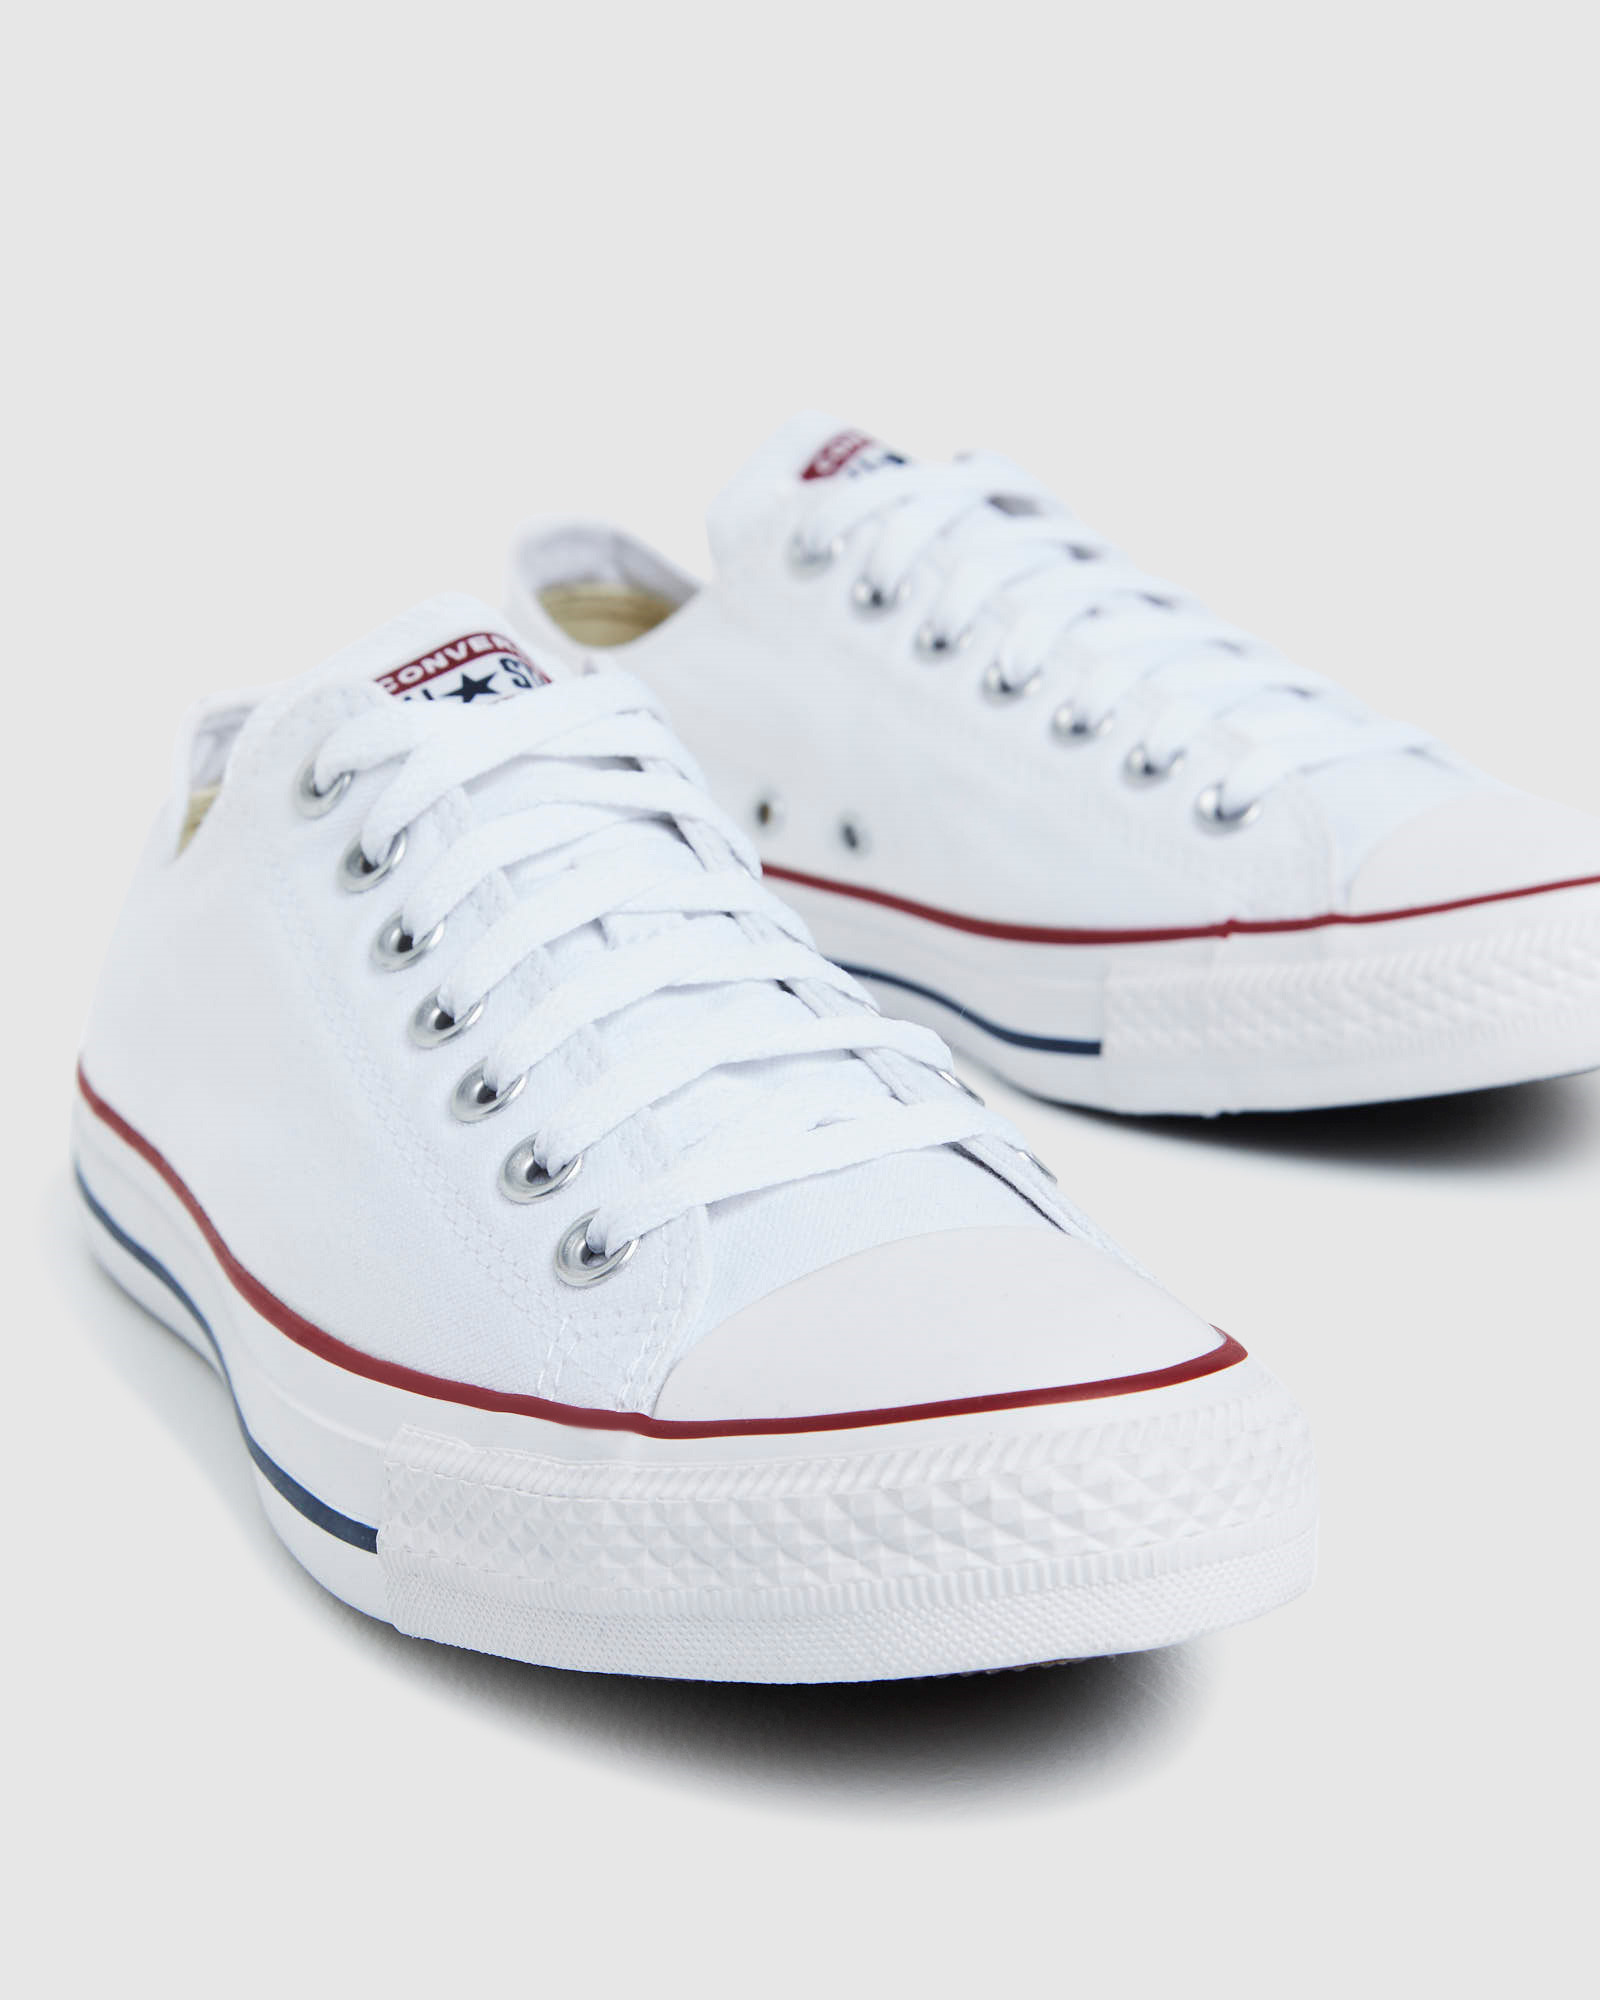 f6e0f549bd6 Converse Chuck Taylor All Star Lo Canvas Sneakers White Shoe ...